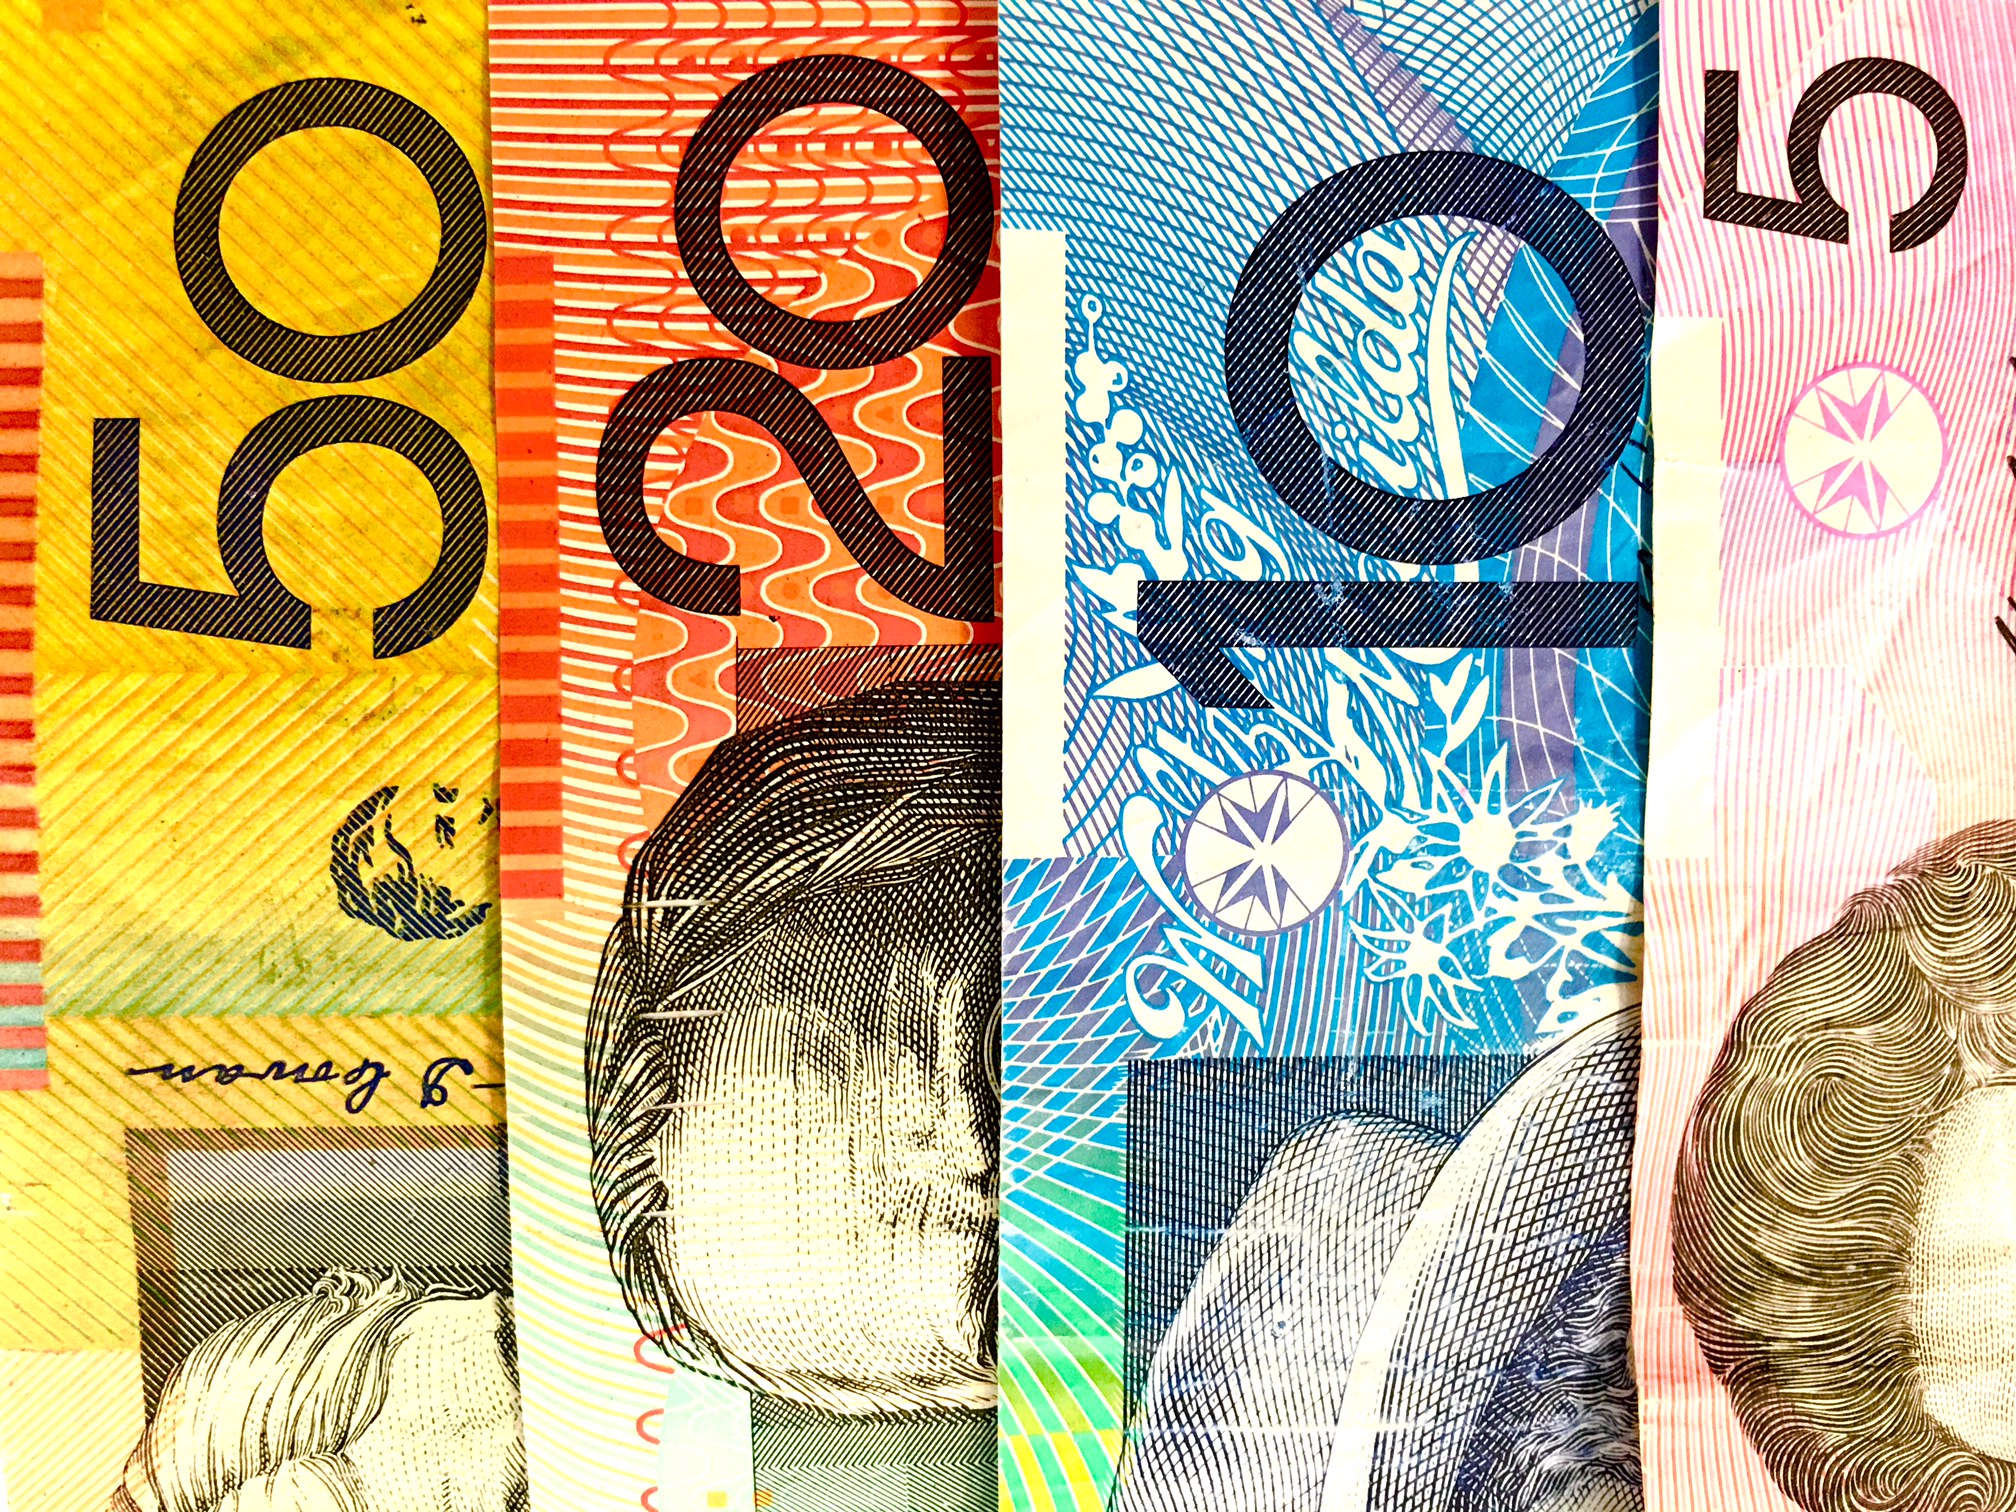 Aussies lose $229m to scams in 2015 as online swindles rise